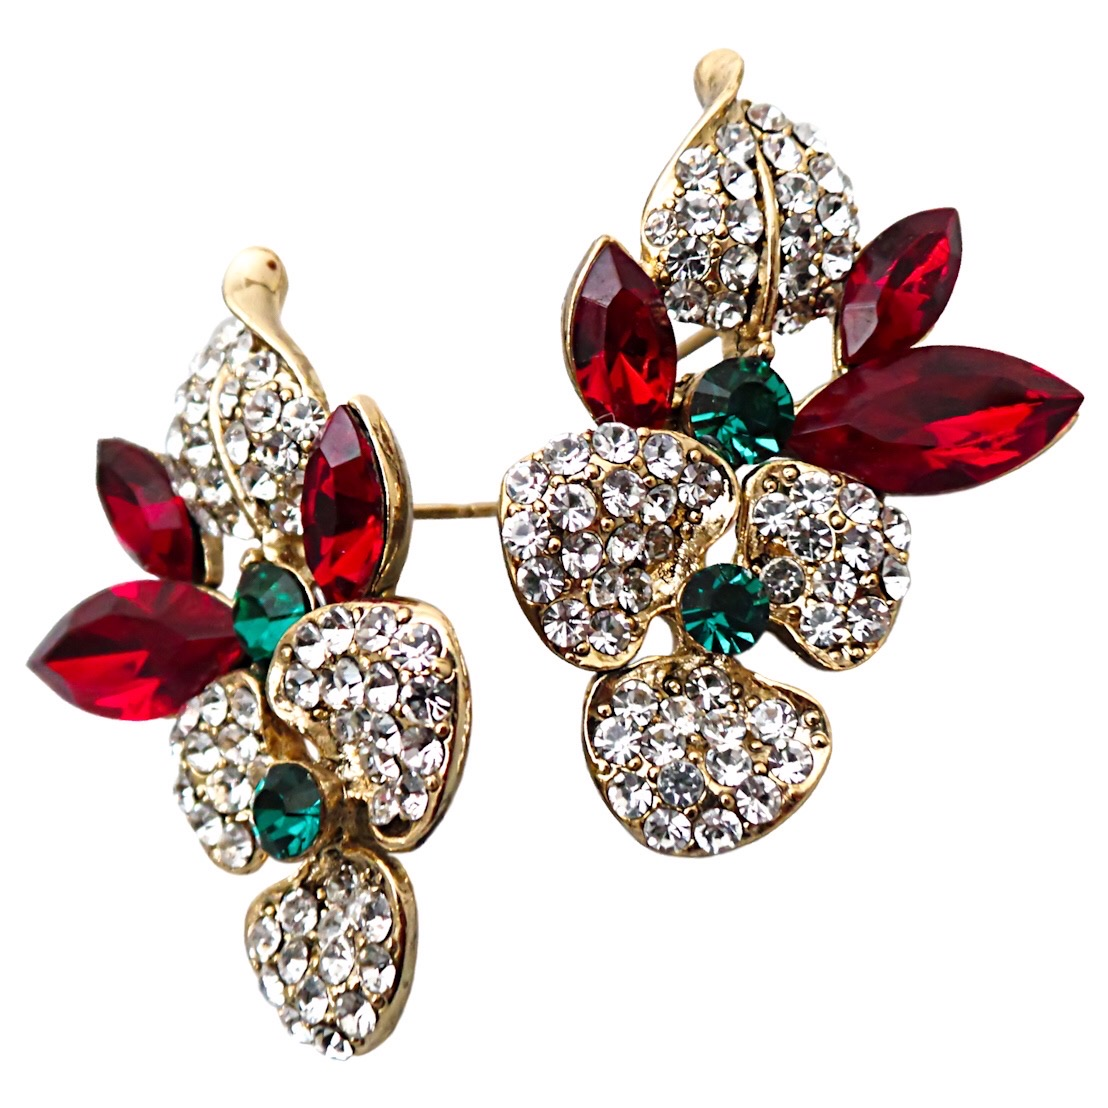 Earrings - DESERT ROSE/CESG